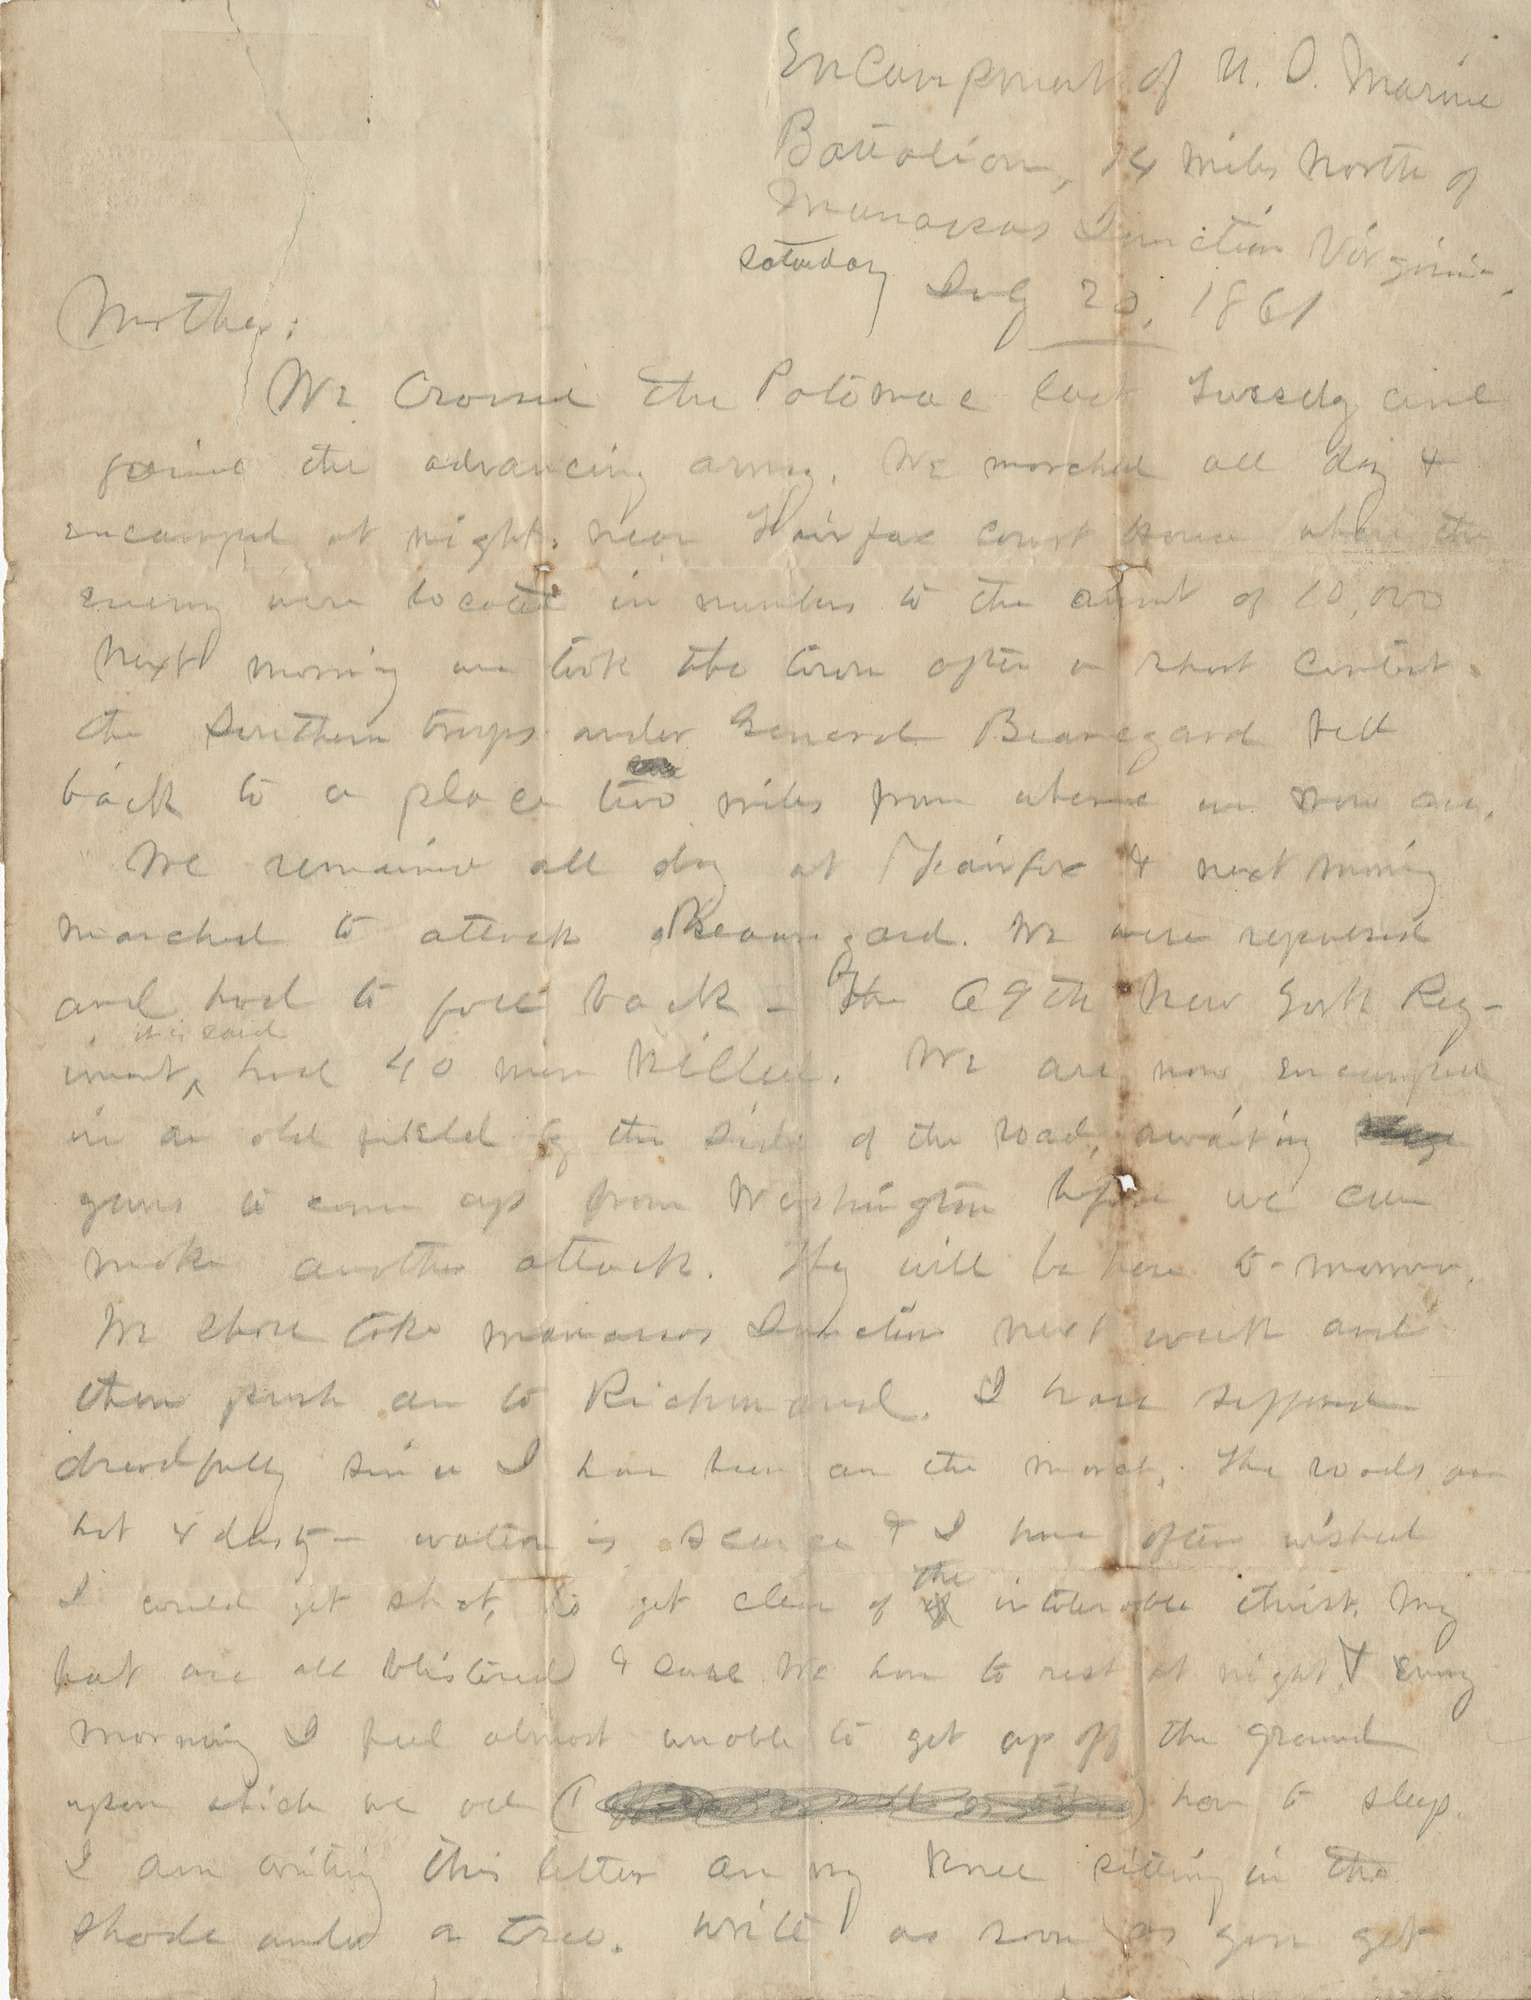 Ms2018_027_PierceCharles_Letter_1861_0720a.jpg